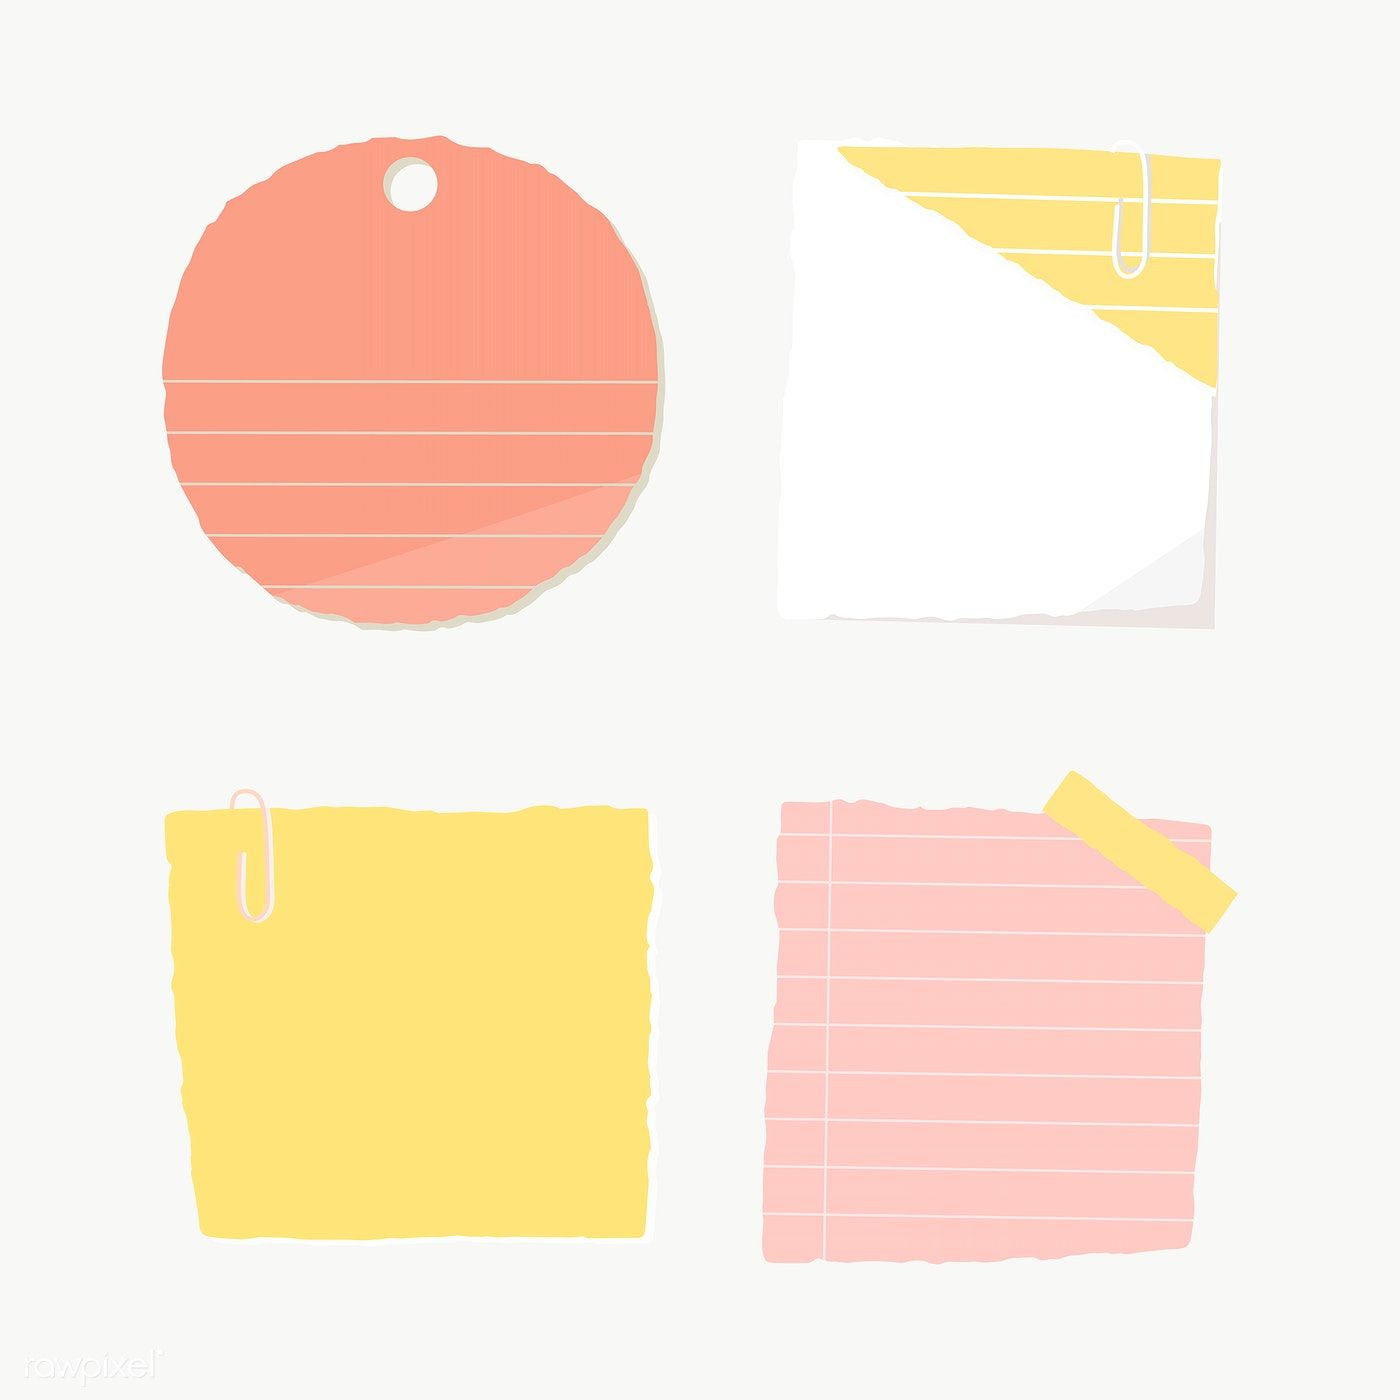 Colorful Paper Note Collection Social Ads Template Transparent Png Free Image By Rawpixel Com Manotang Note Paper Social Ads Sticky Notes Collection